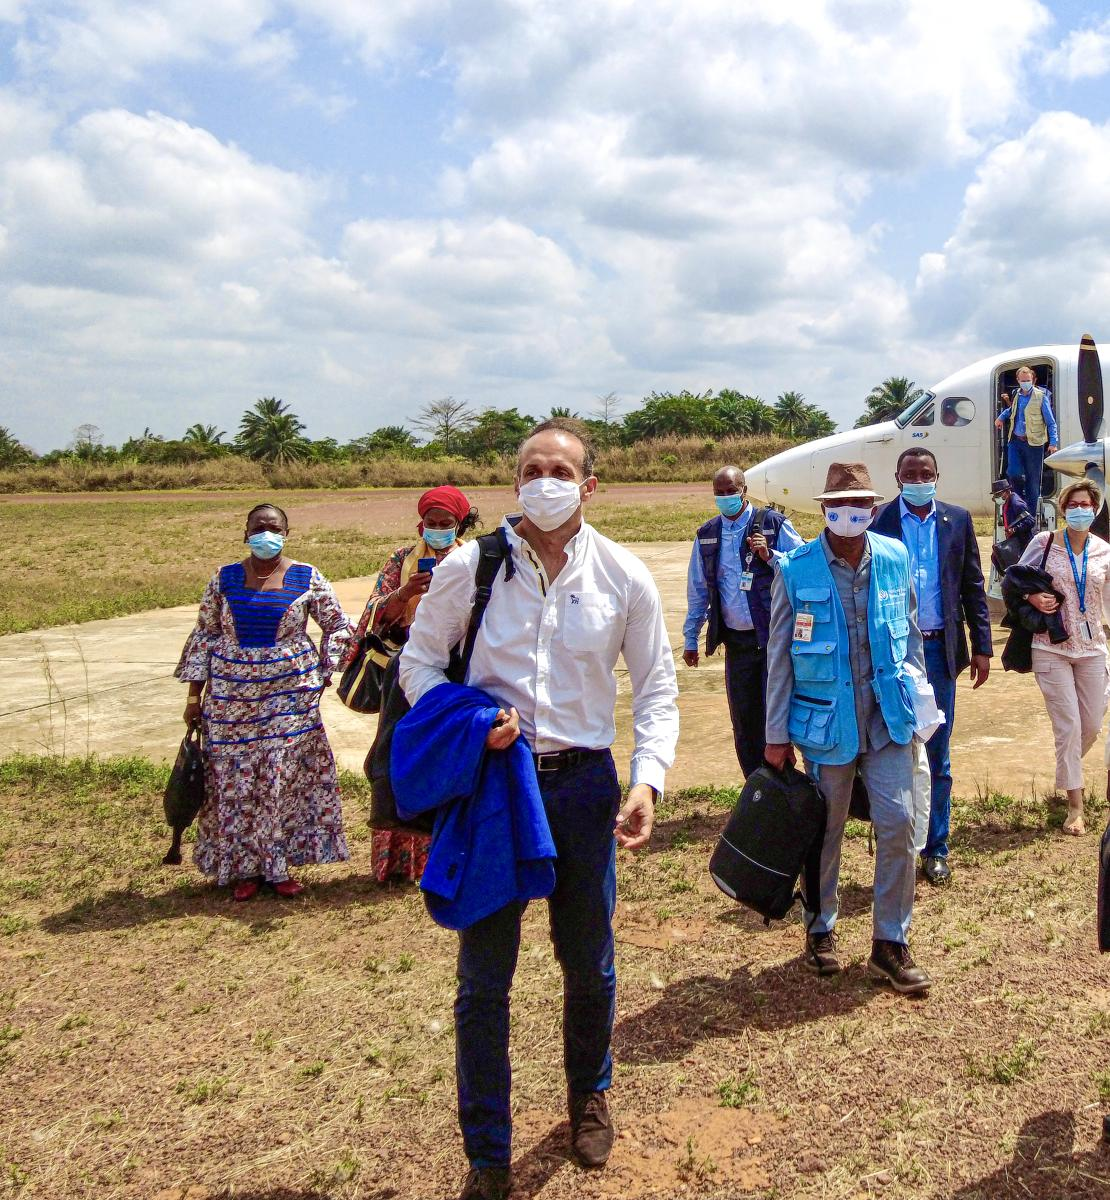 Several people in face masks, holding bags, and jackets, deplane in a field on a sunny day.